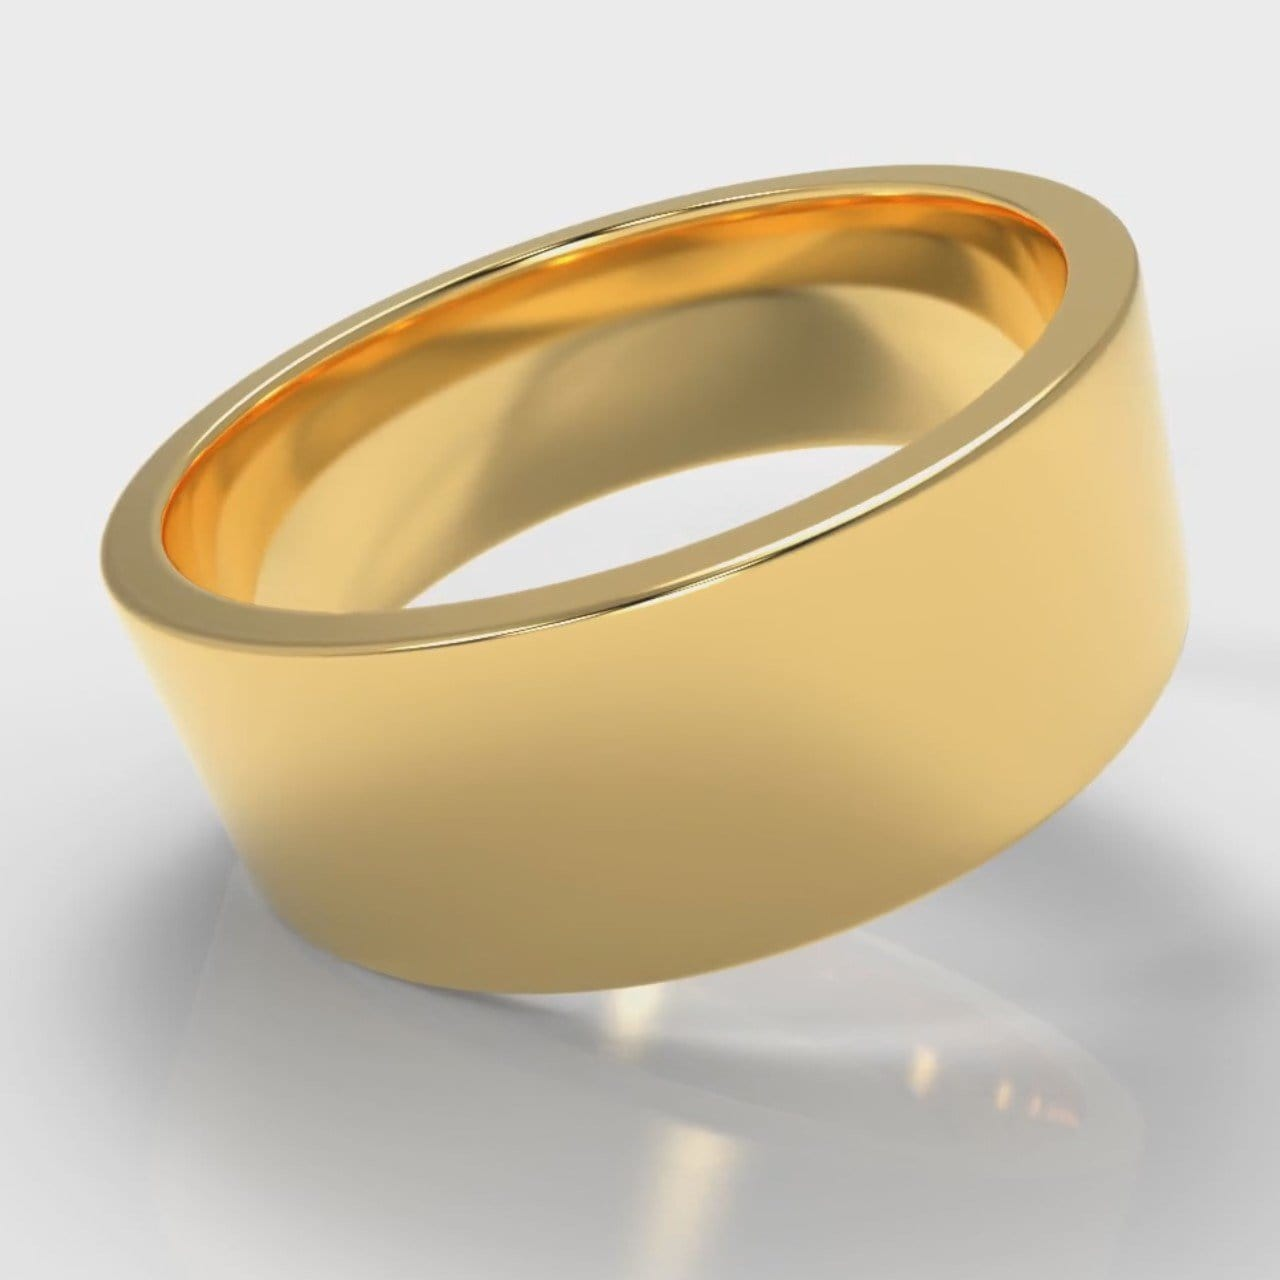 8mm Flat Top Comfort Fit Wedding Ring - Yellow Gold